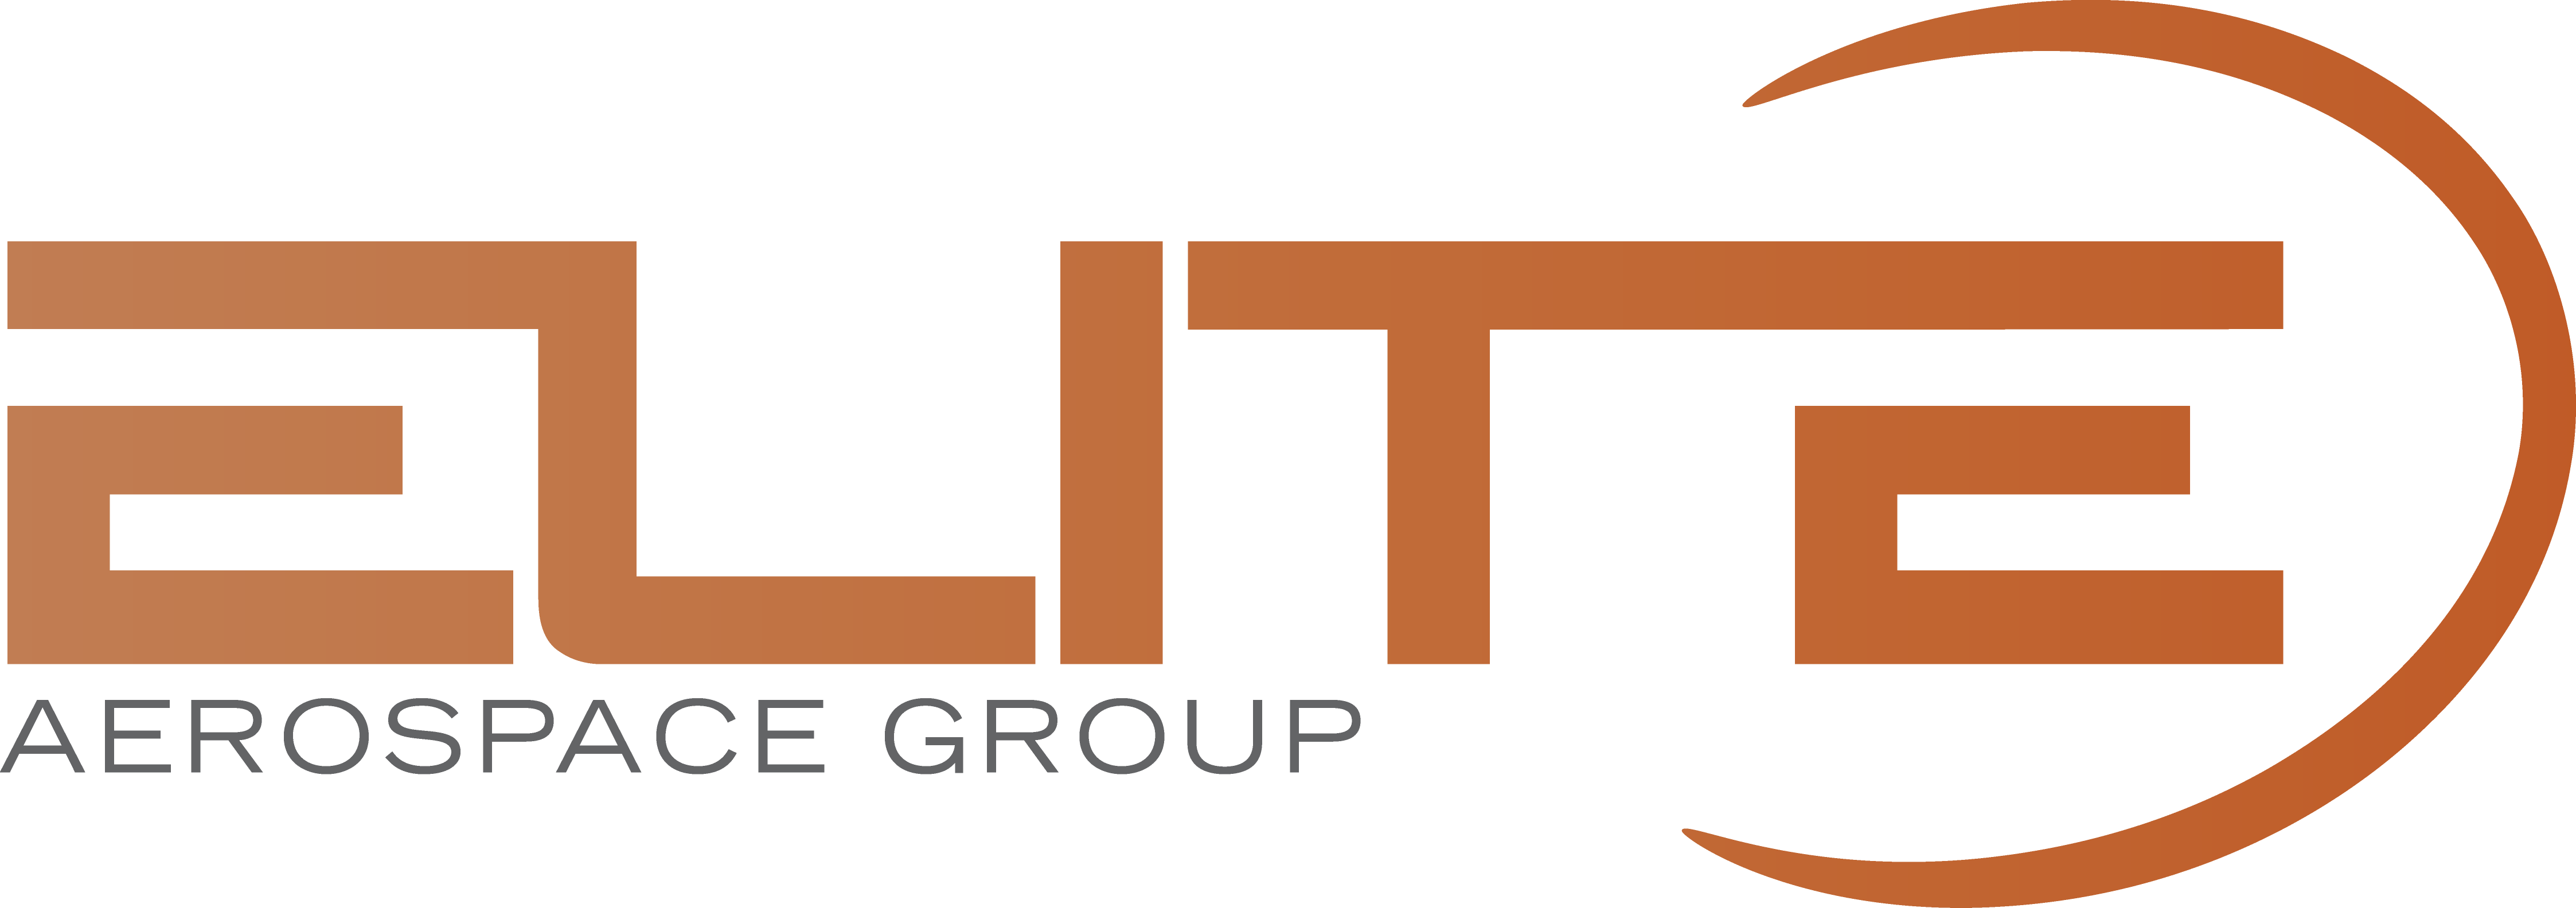 elite aviation products announces corporate rollup into